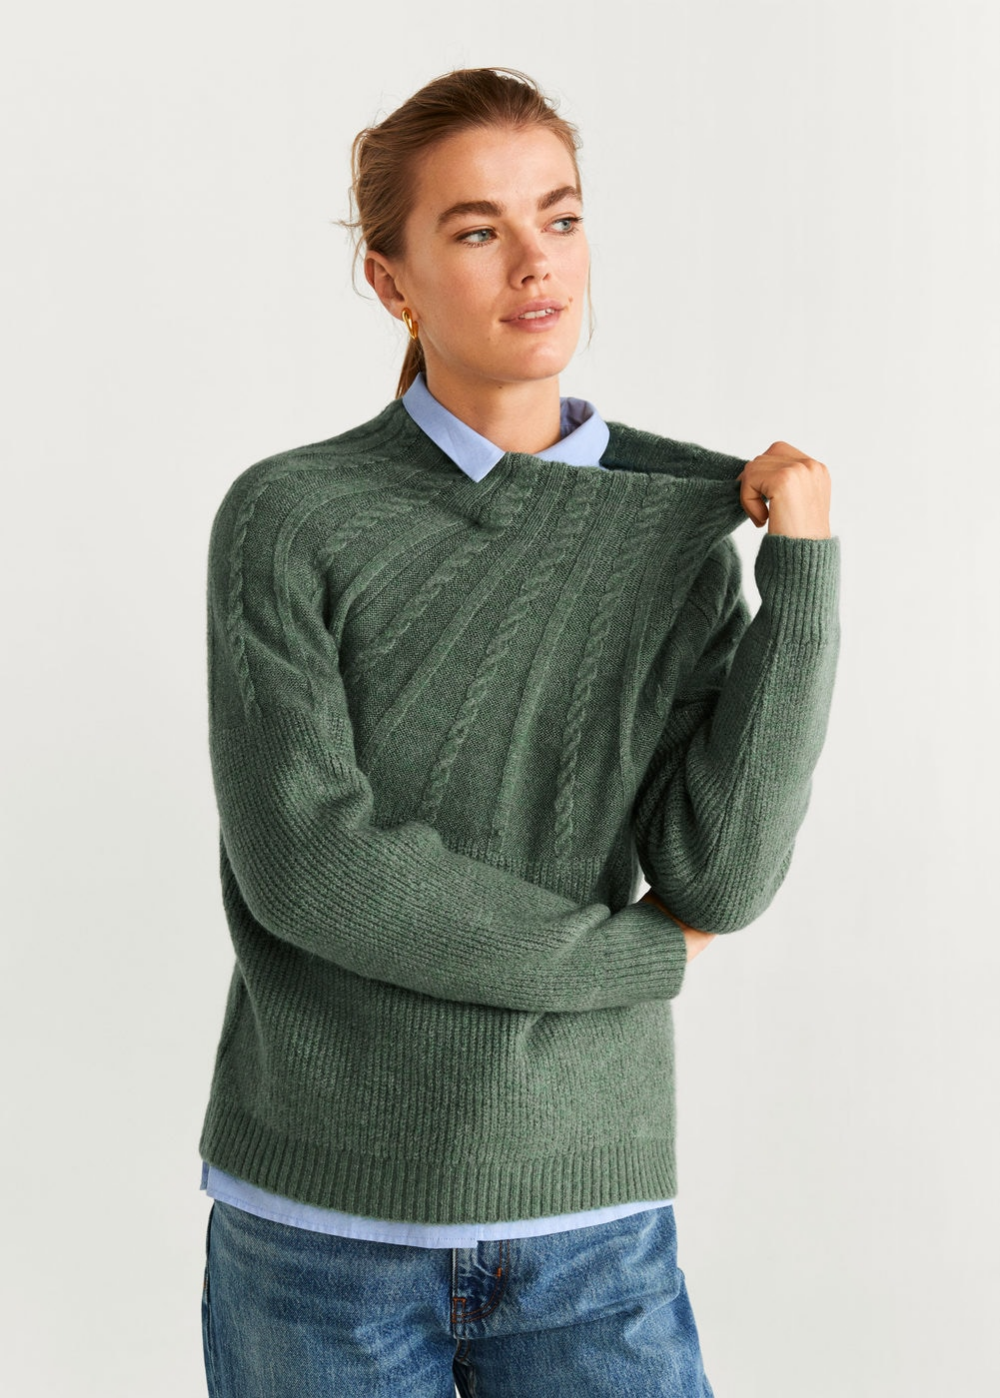 closer at hot sales first rate Contrasting knit sweater - Women   Sweaters for women, Pullover ...